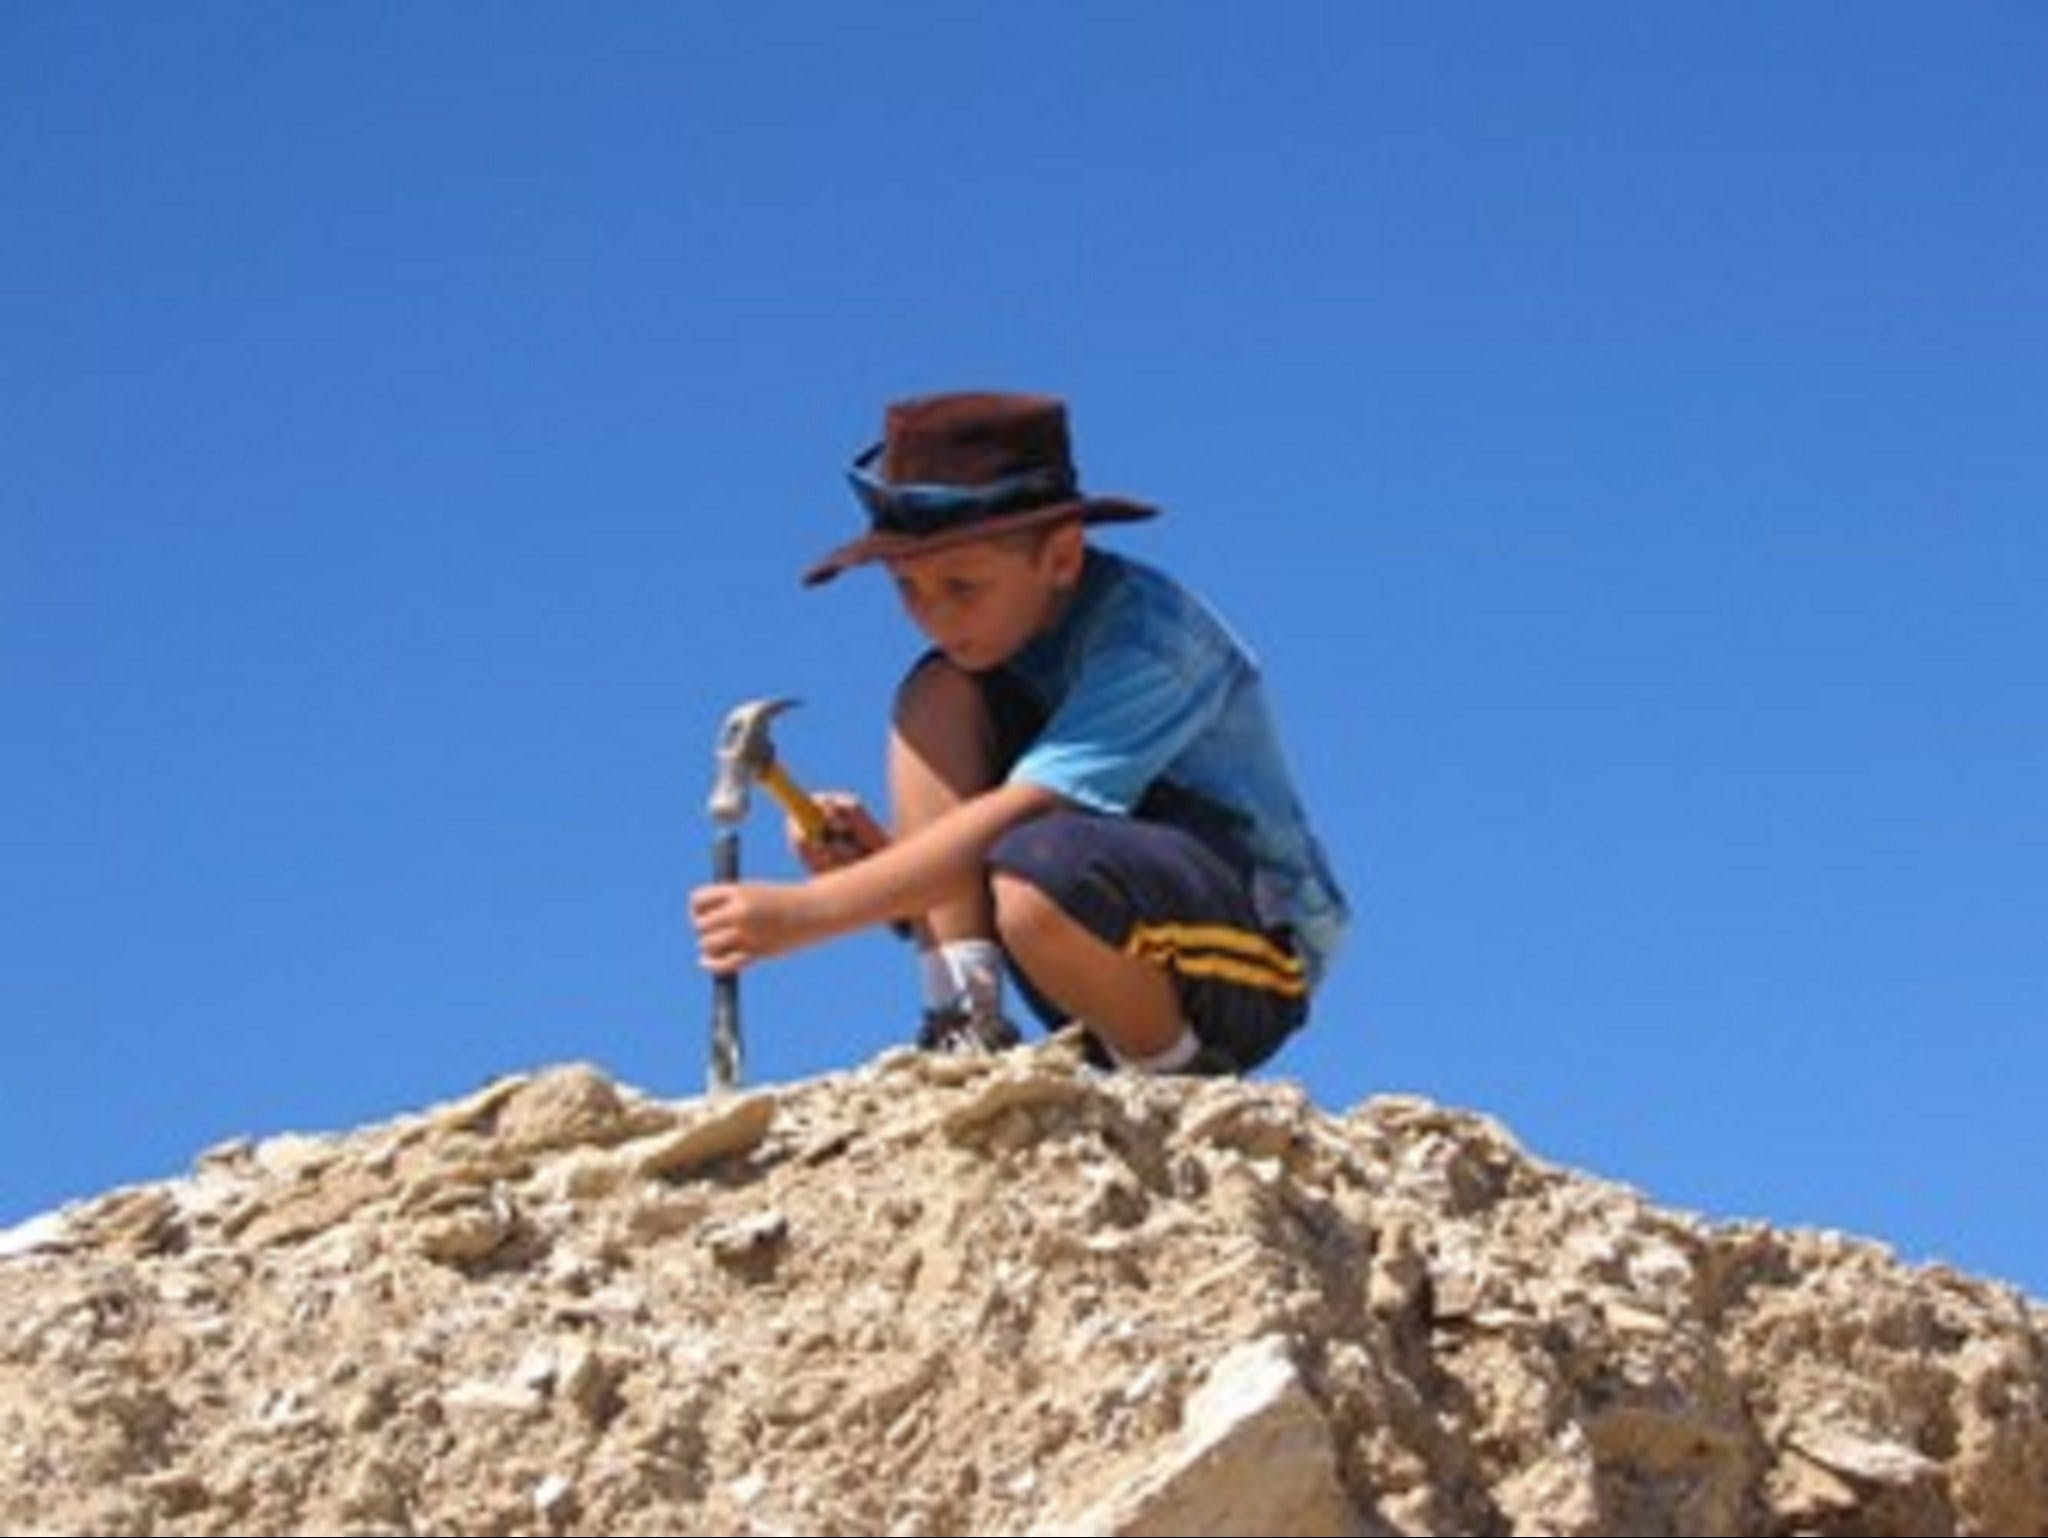 Richmond Fossil Hunting Sites - Accommodation Search